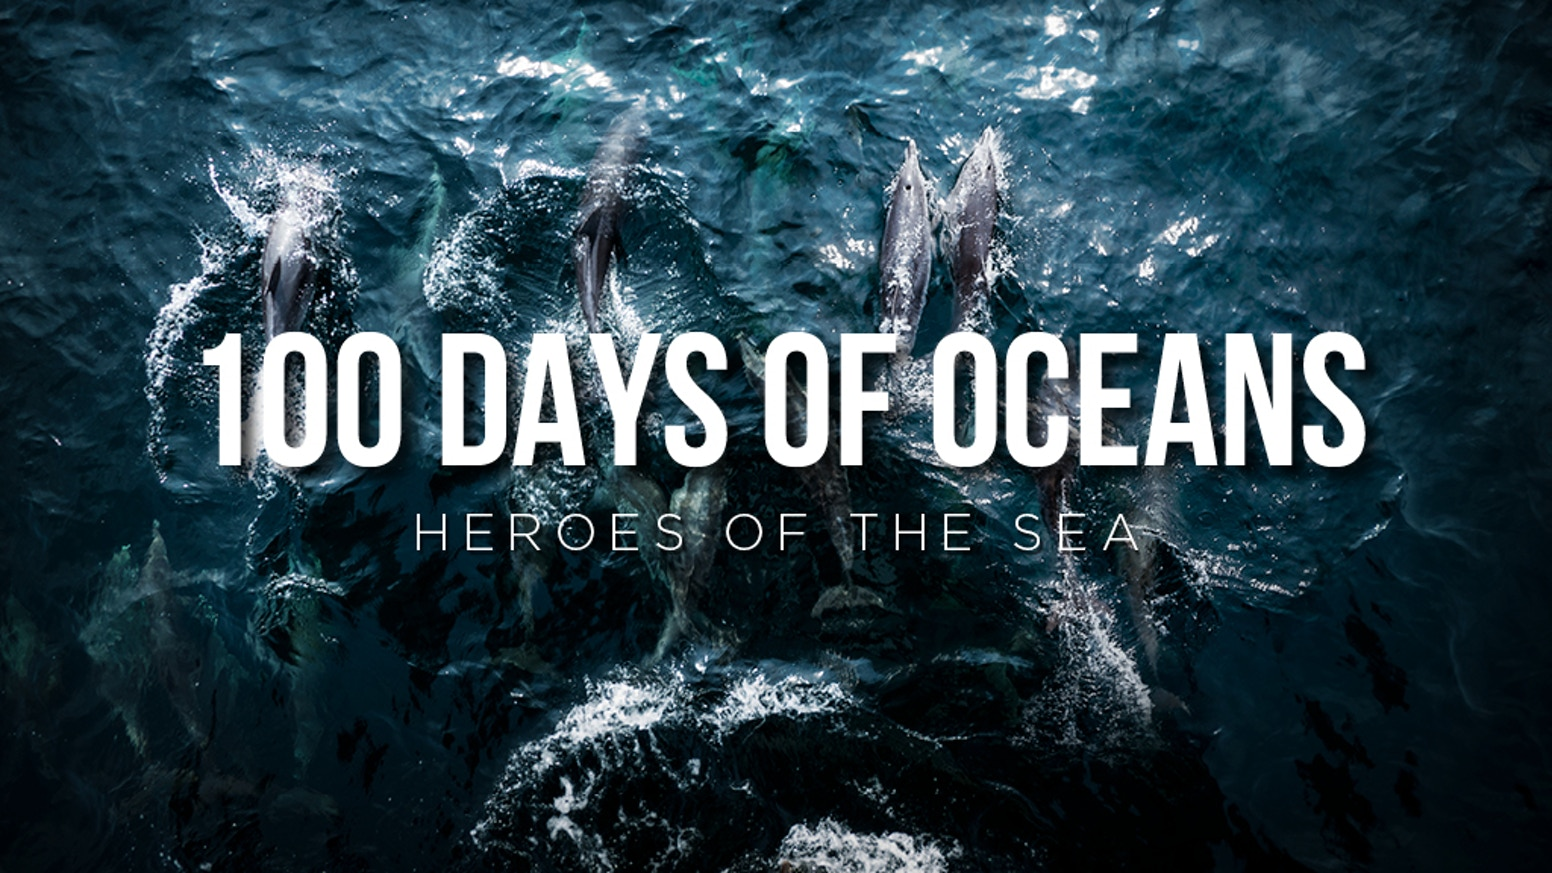 100 DAYS OF OCEANS - Heroes of the Sea